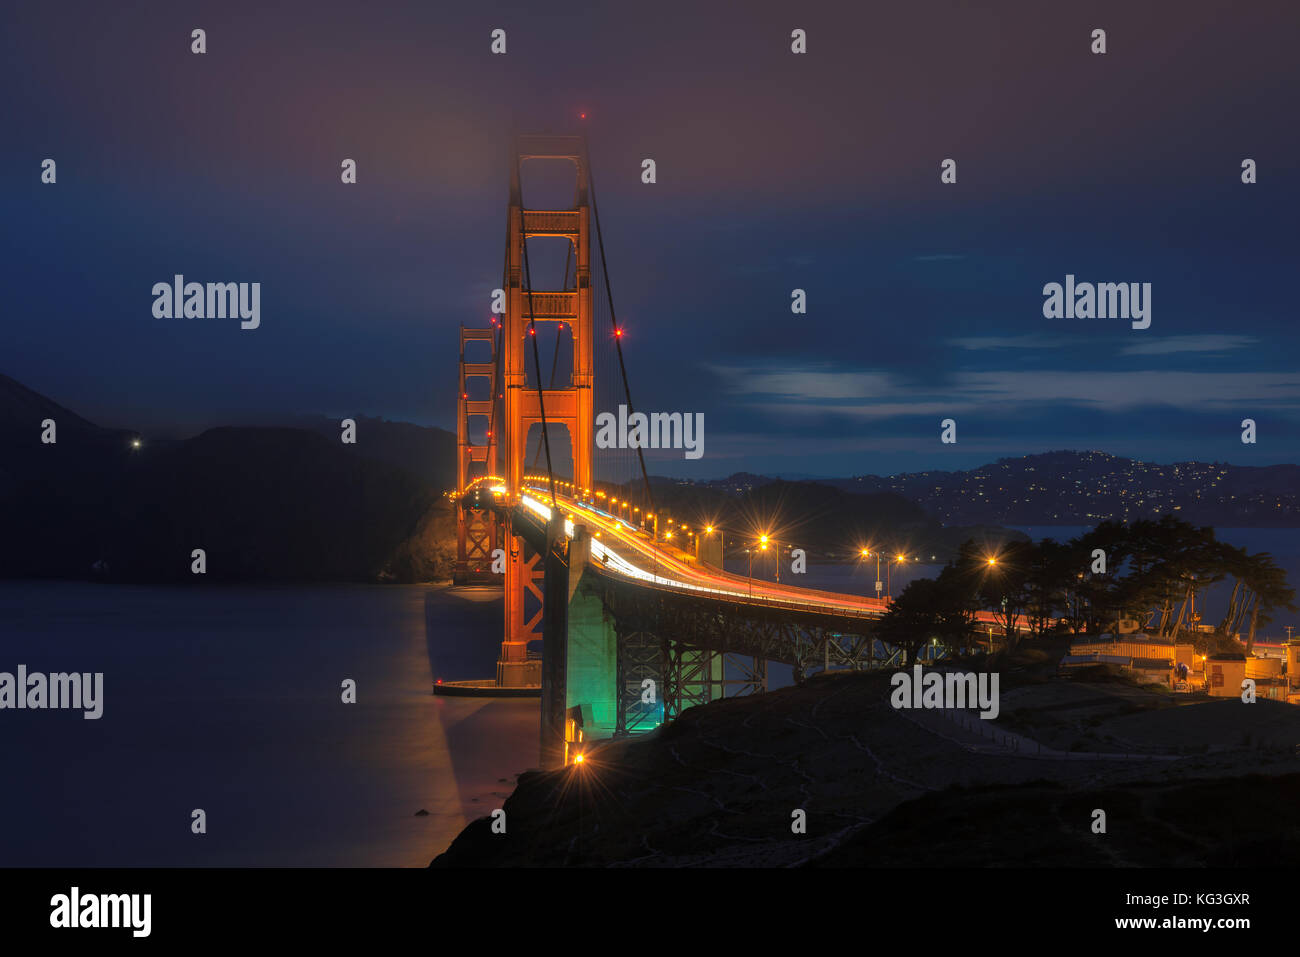 Golden Gate Bridge at night seen from San Francisco. - Stock Image